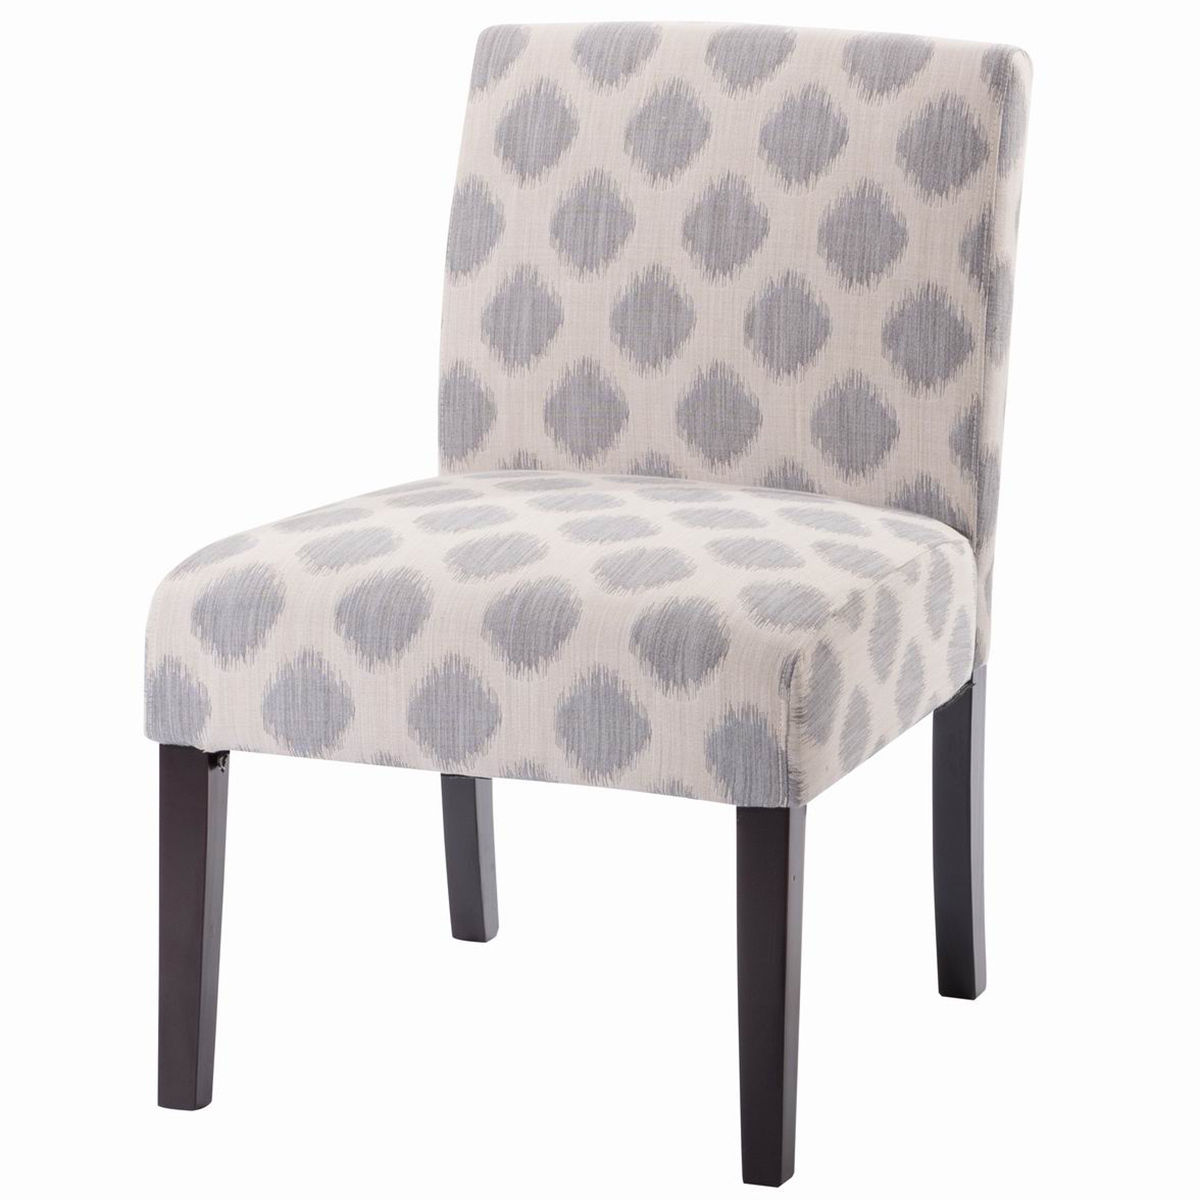 Walmart Chairs: Gymax Wood Linen Fabric Upholstered Armless Dining Chair